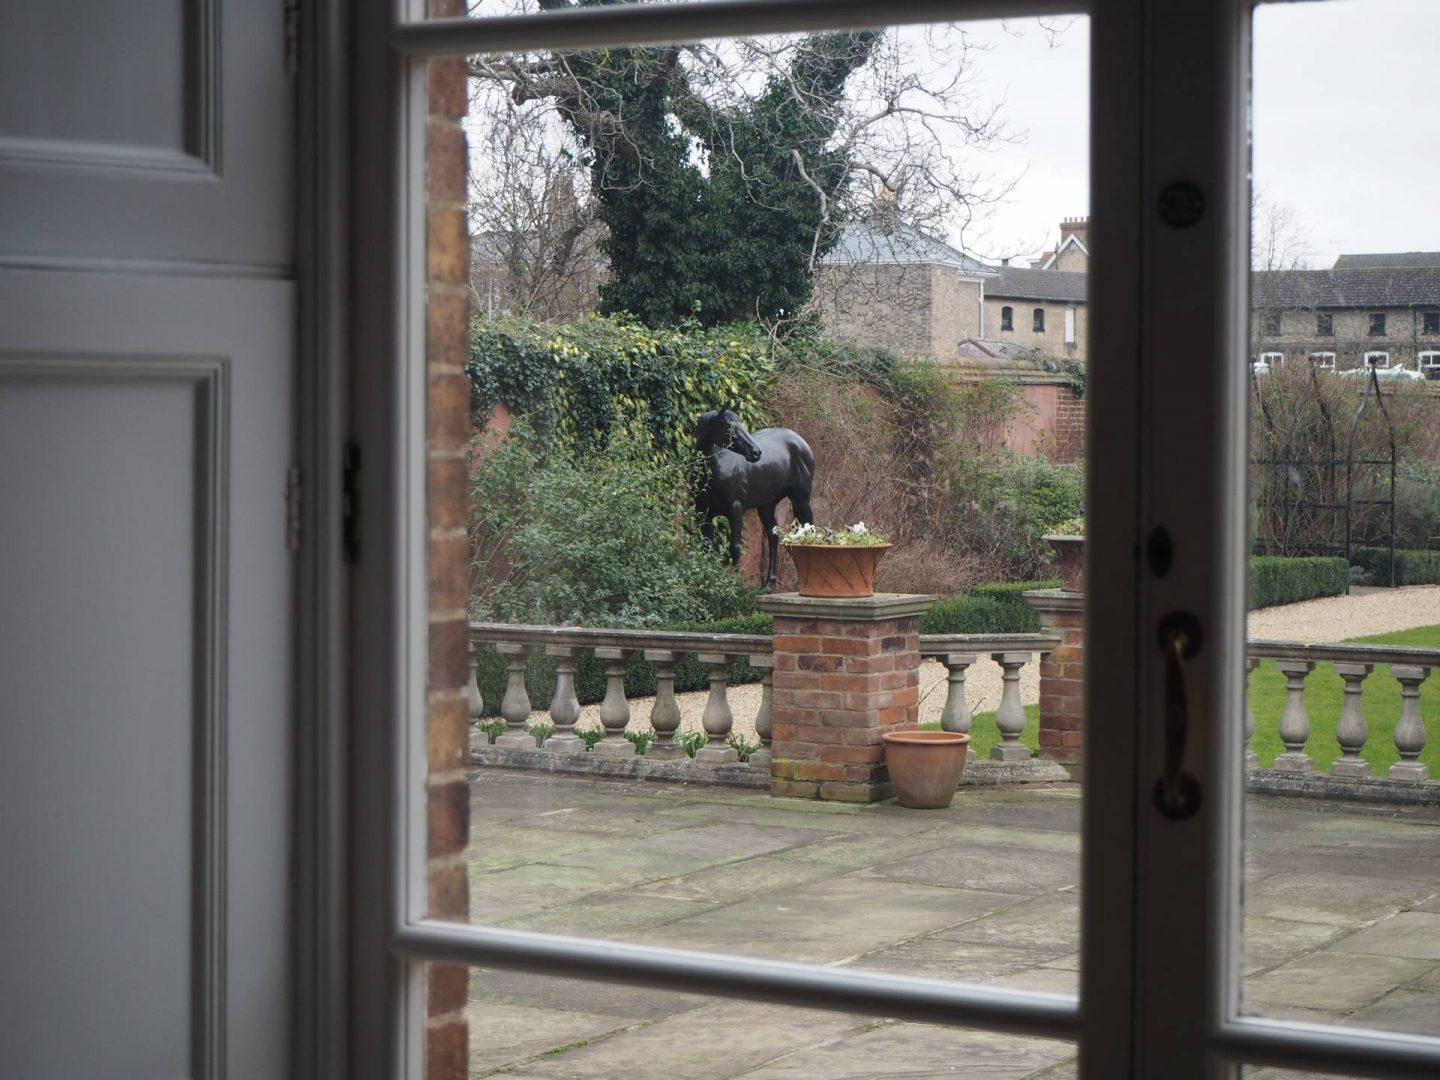 Horse statue from window in Jockey Club Rooms Newmarket